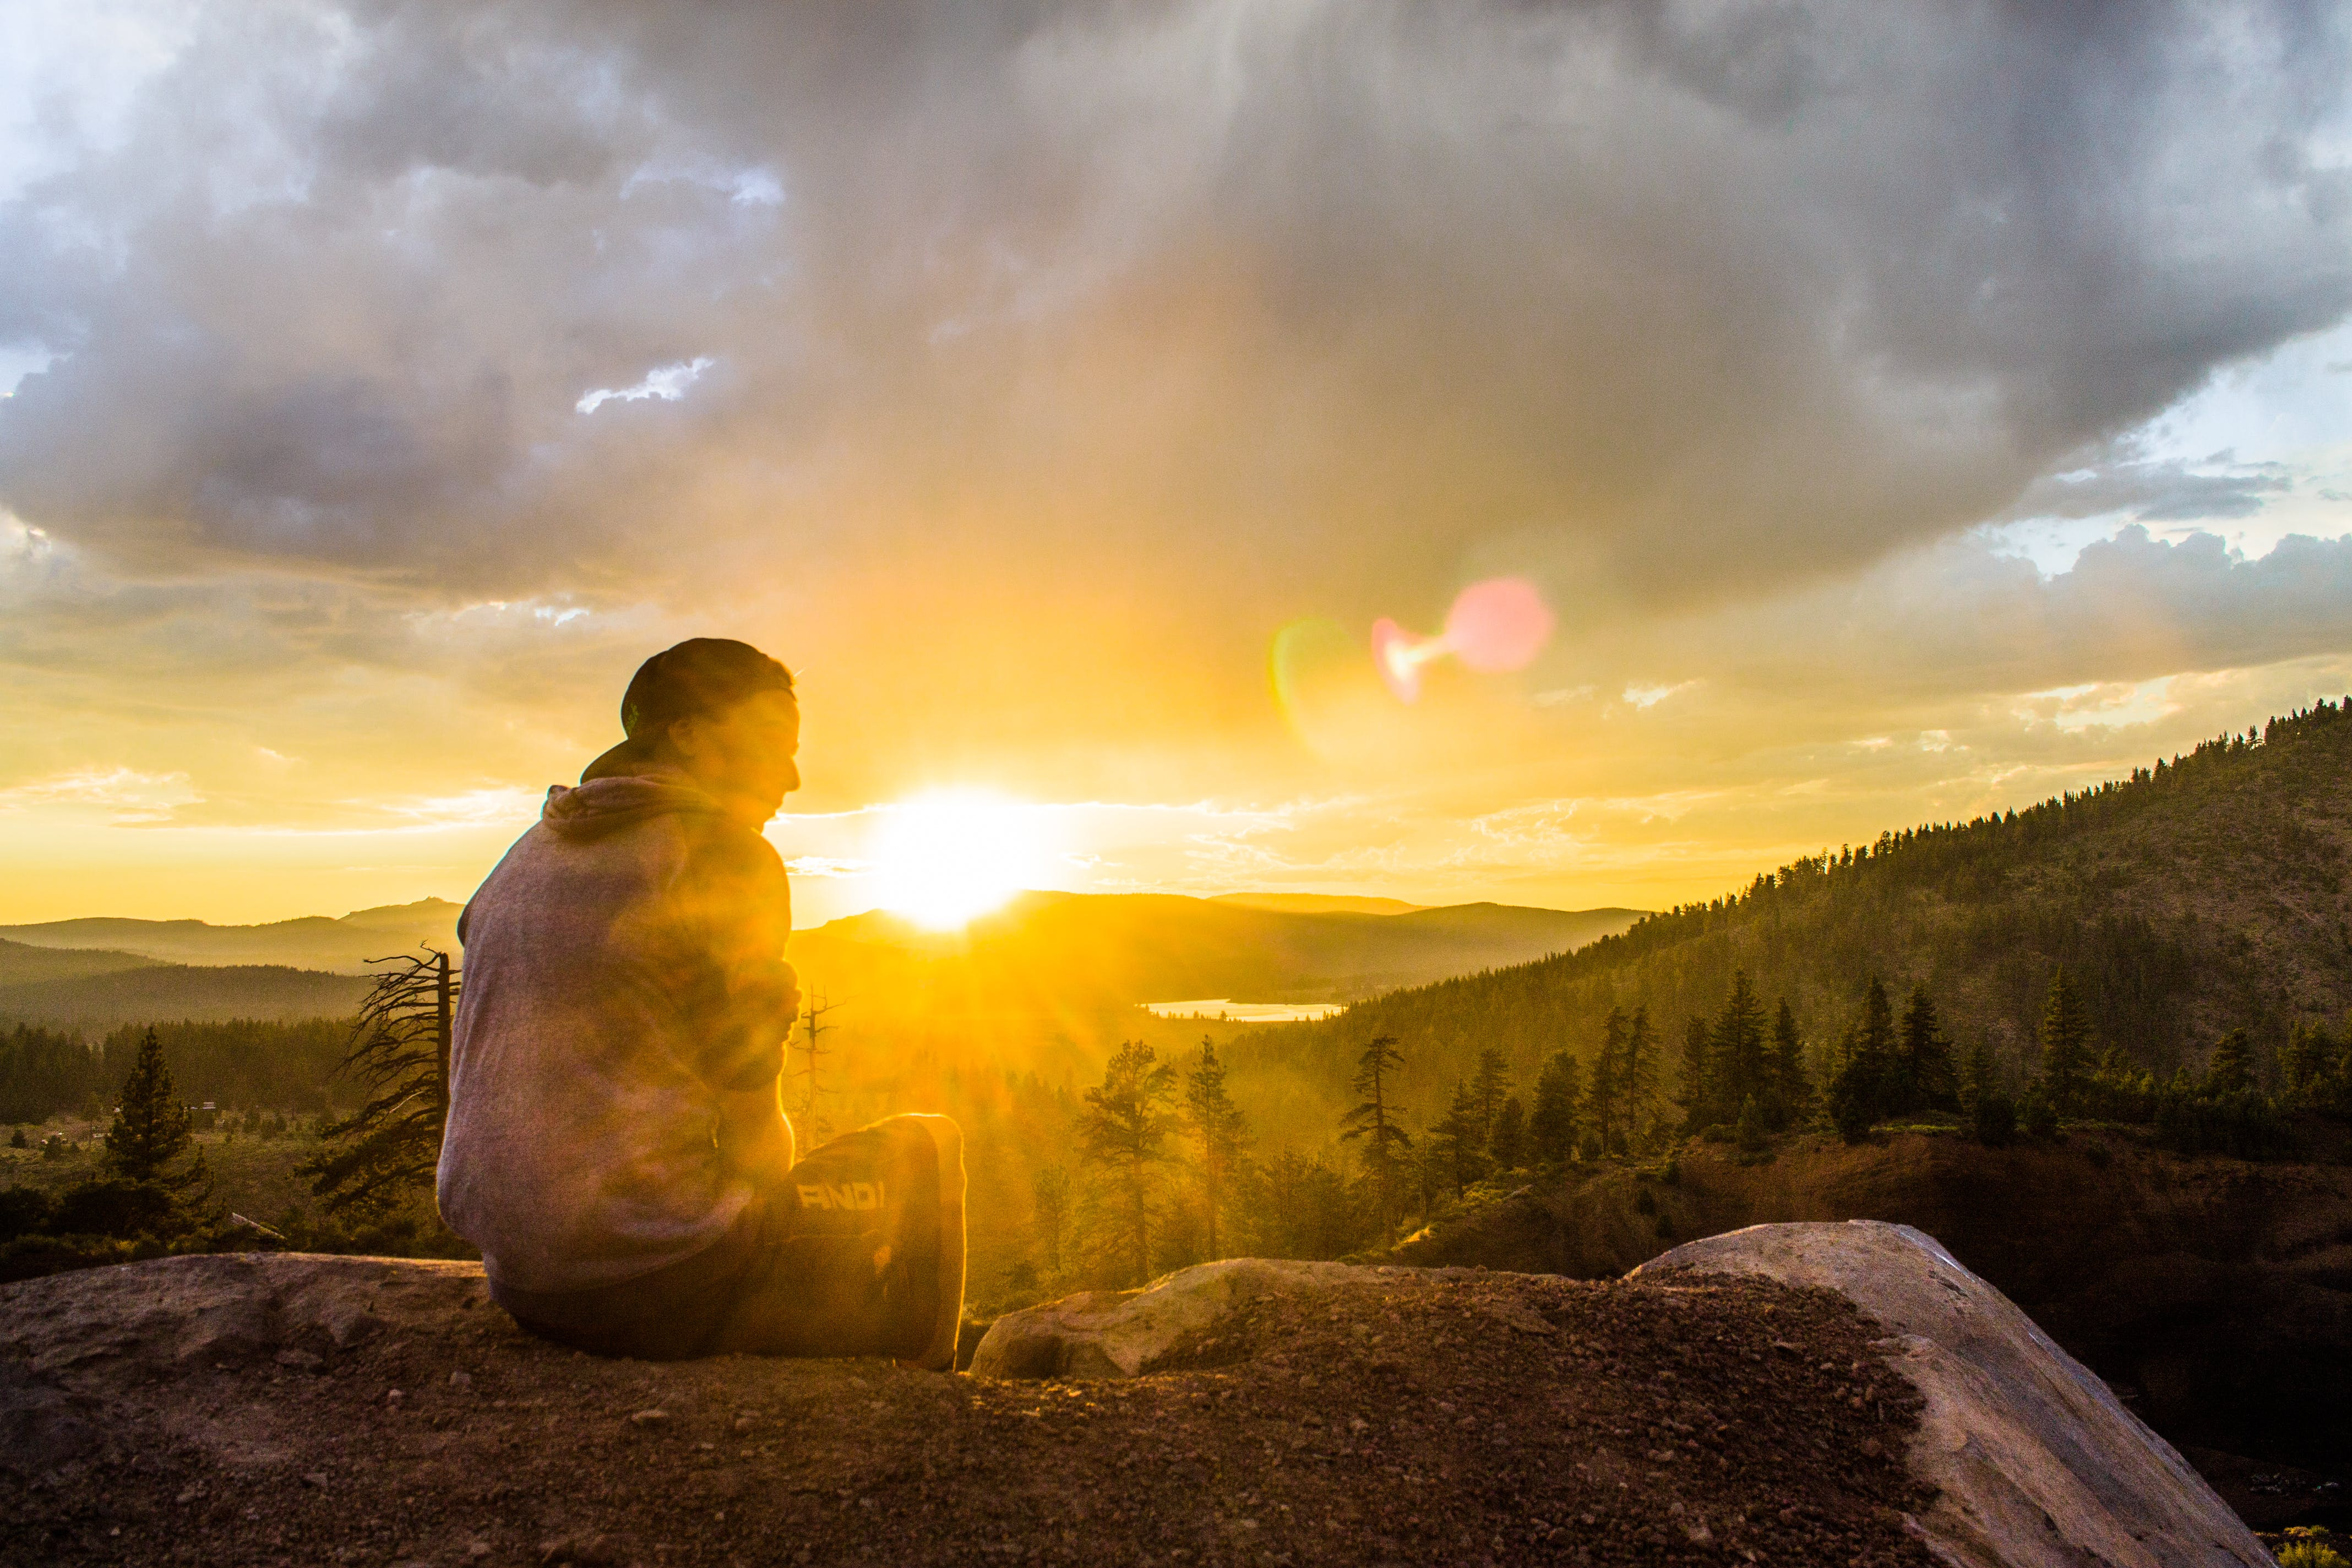 Person Sitting on Stone Facing Sunset